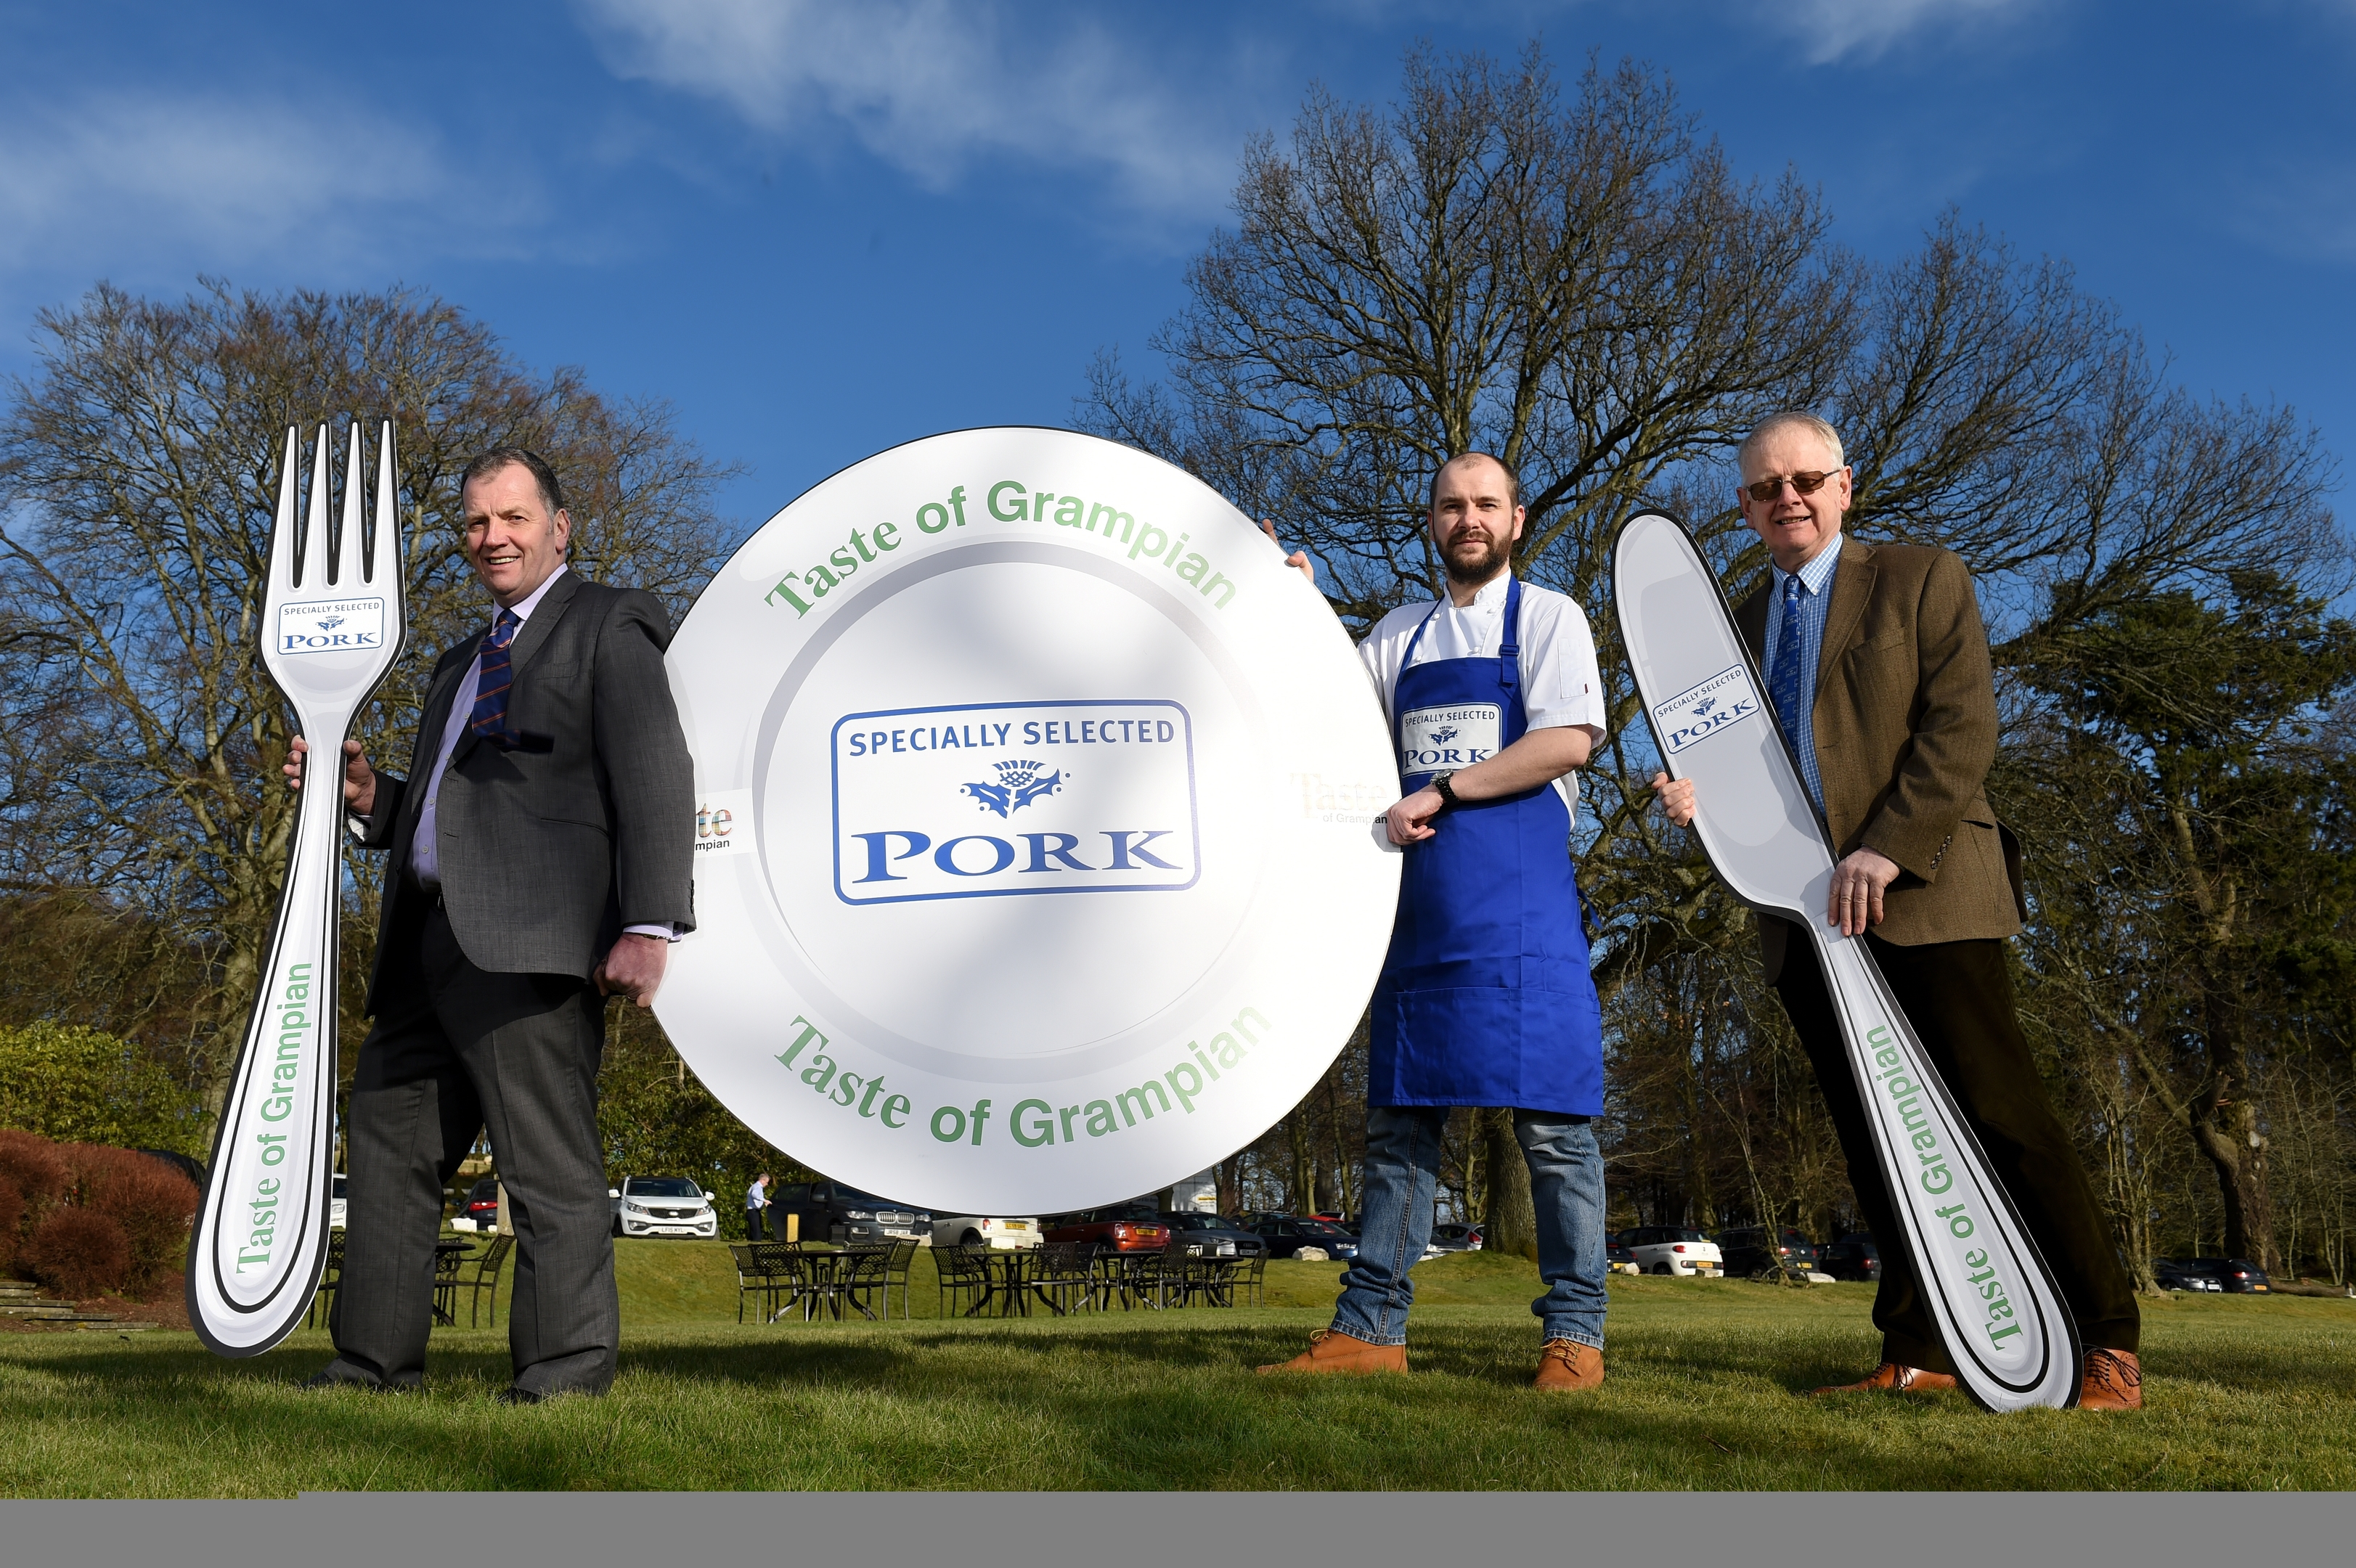 Taste of Grampian 2016 launch event - Picture of (L-R) John Gregor (Taste of Grampian Chairman and Executive Director at the ANM Group), Brian McLeish (head chef at Moonfish Café) and Philip Sleigh (North-east pig farmer / QMS Board member)  Picture by KENNY ELRICK